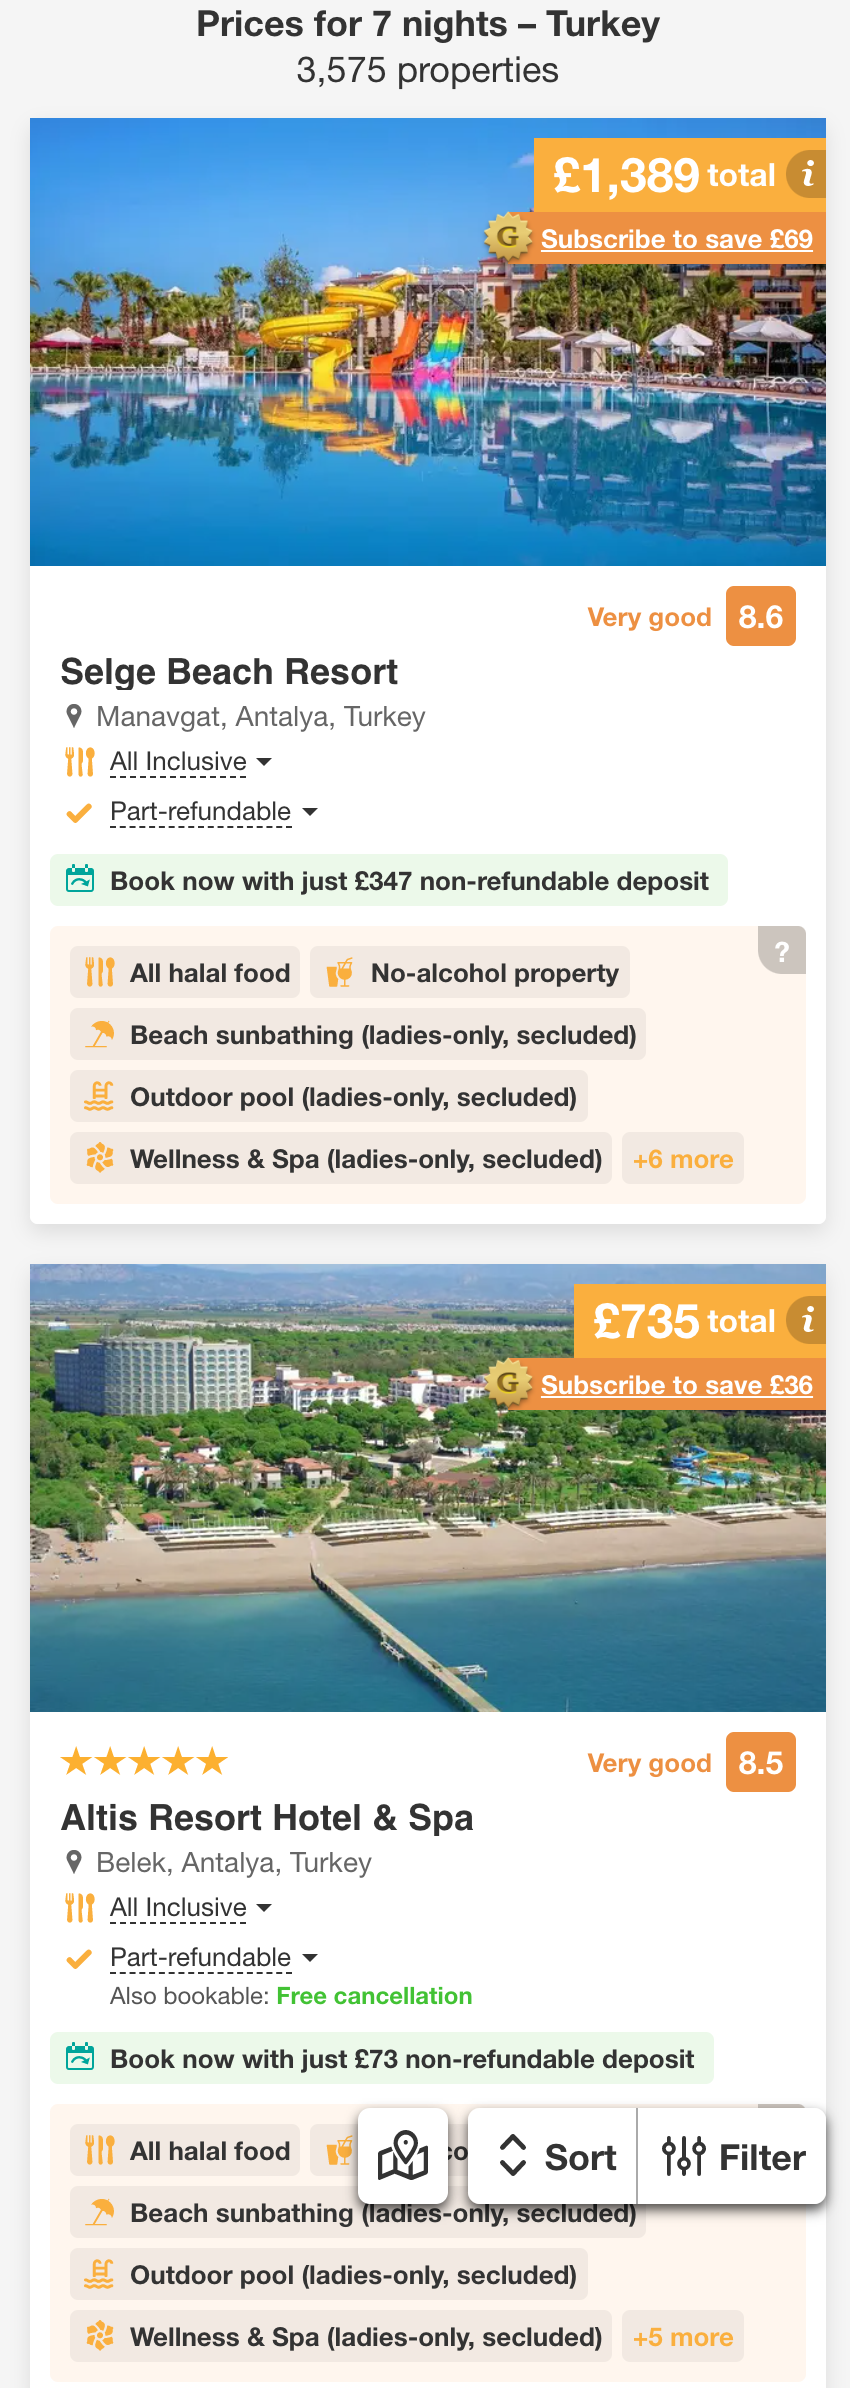 Search results with 'Free cancellation' or 'Book now pay later' options